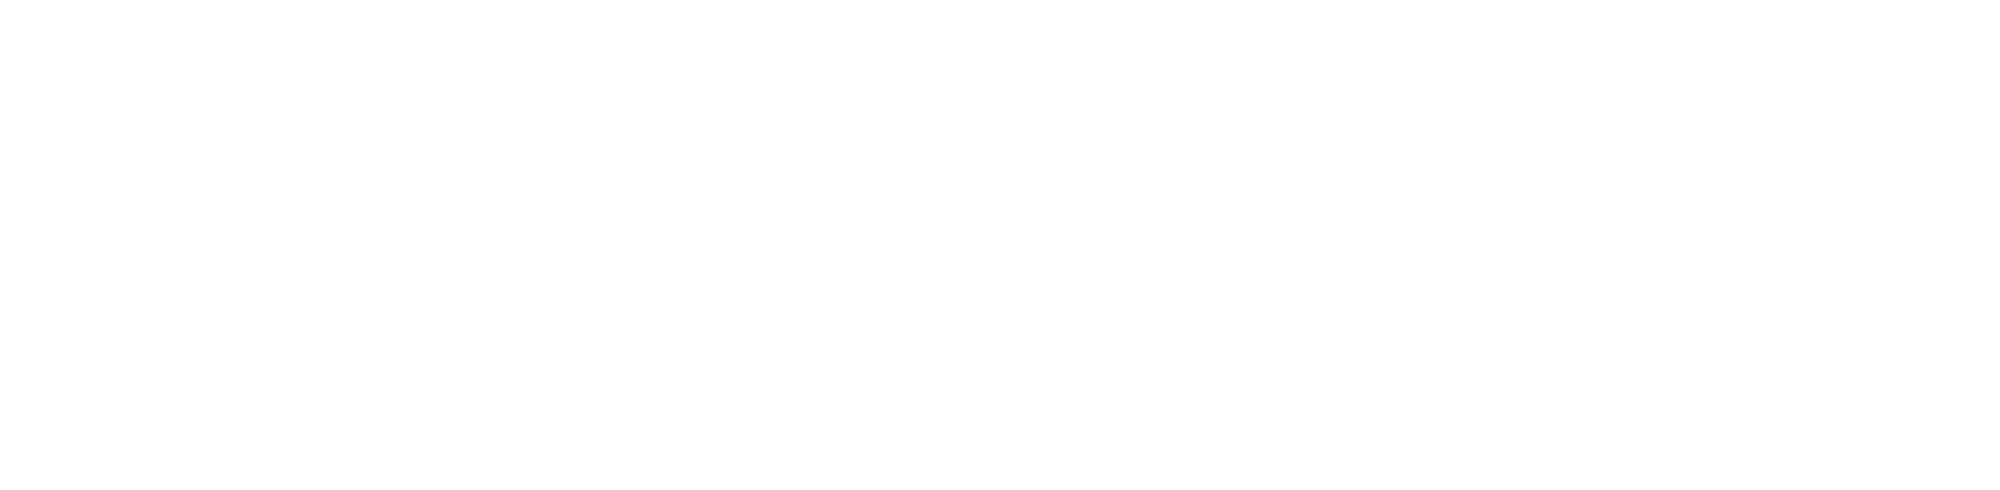 RtI for International Schools Summit-logo-white.png